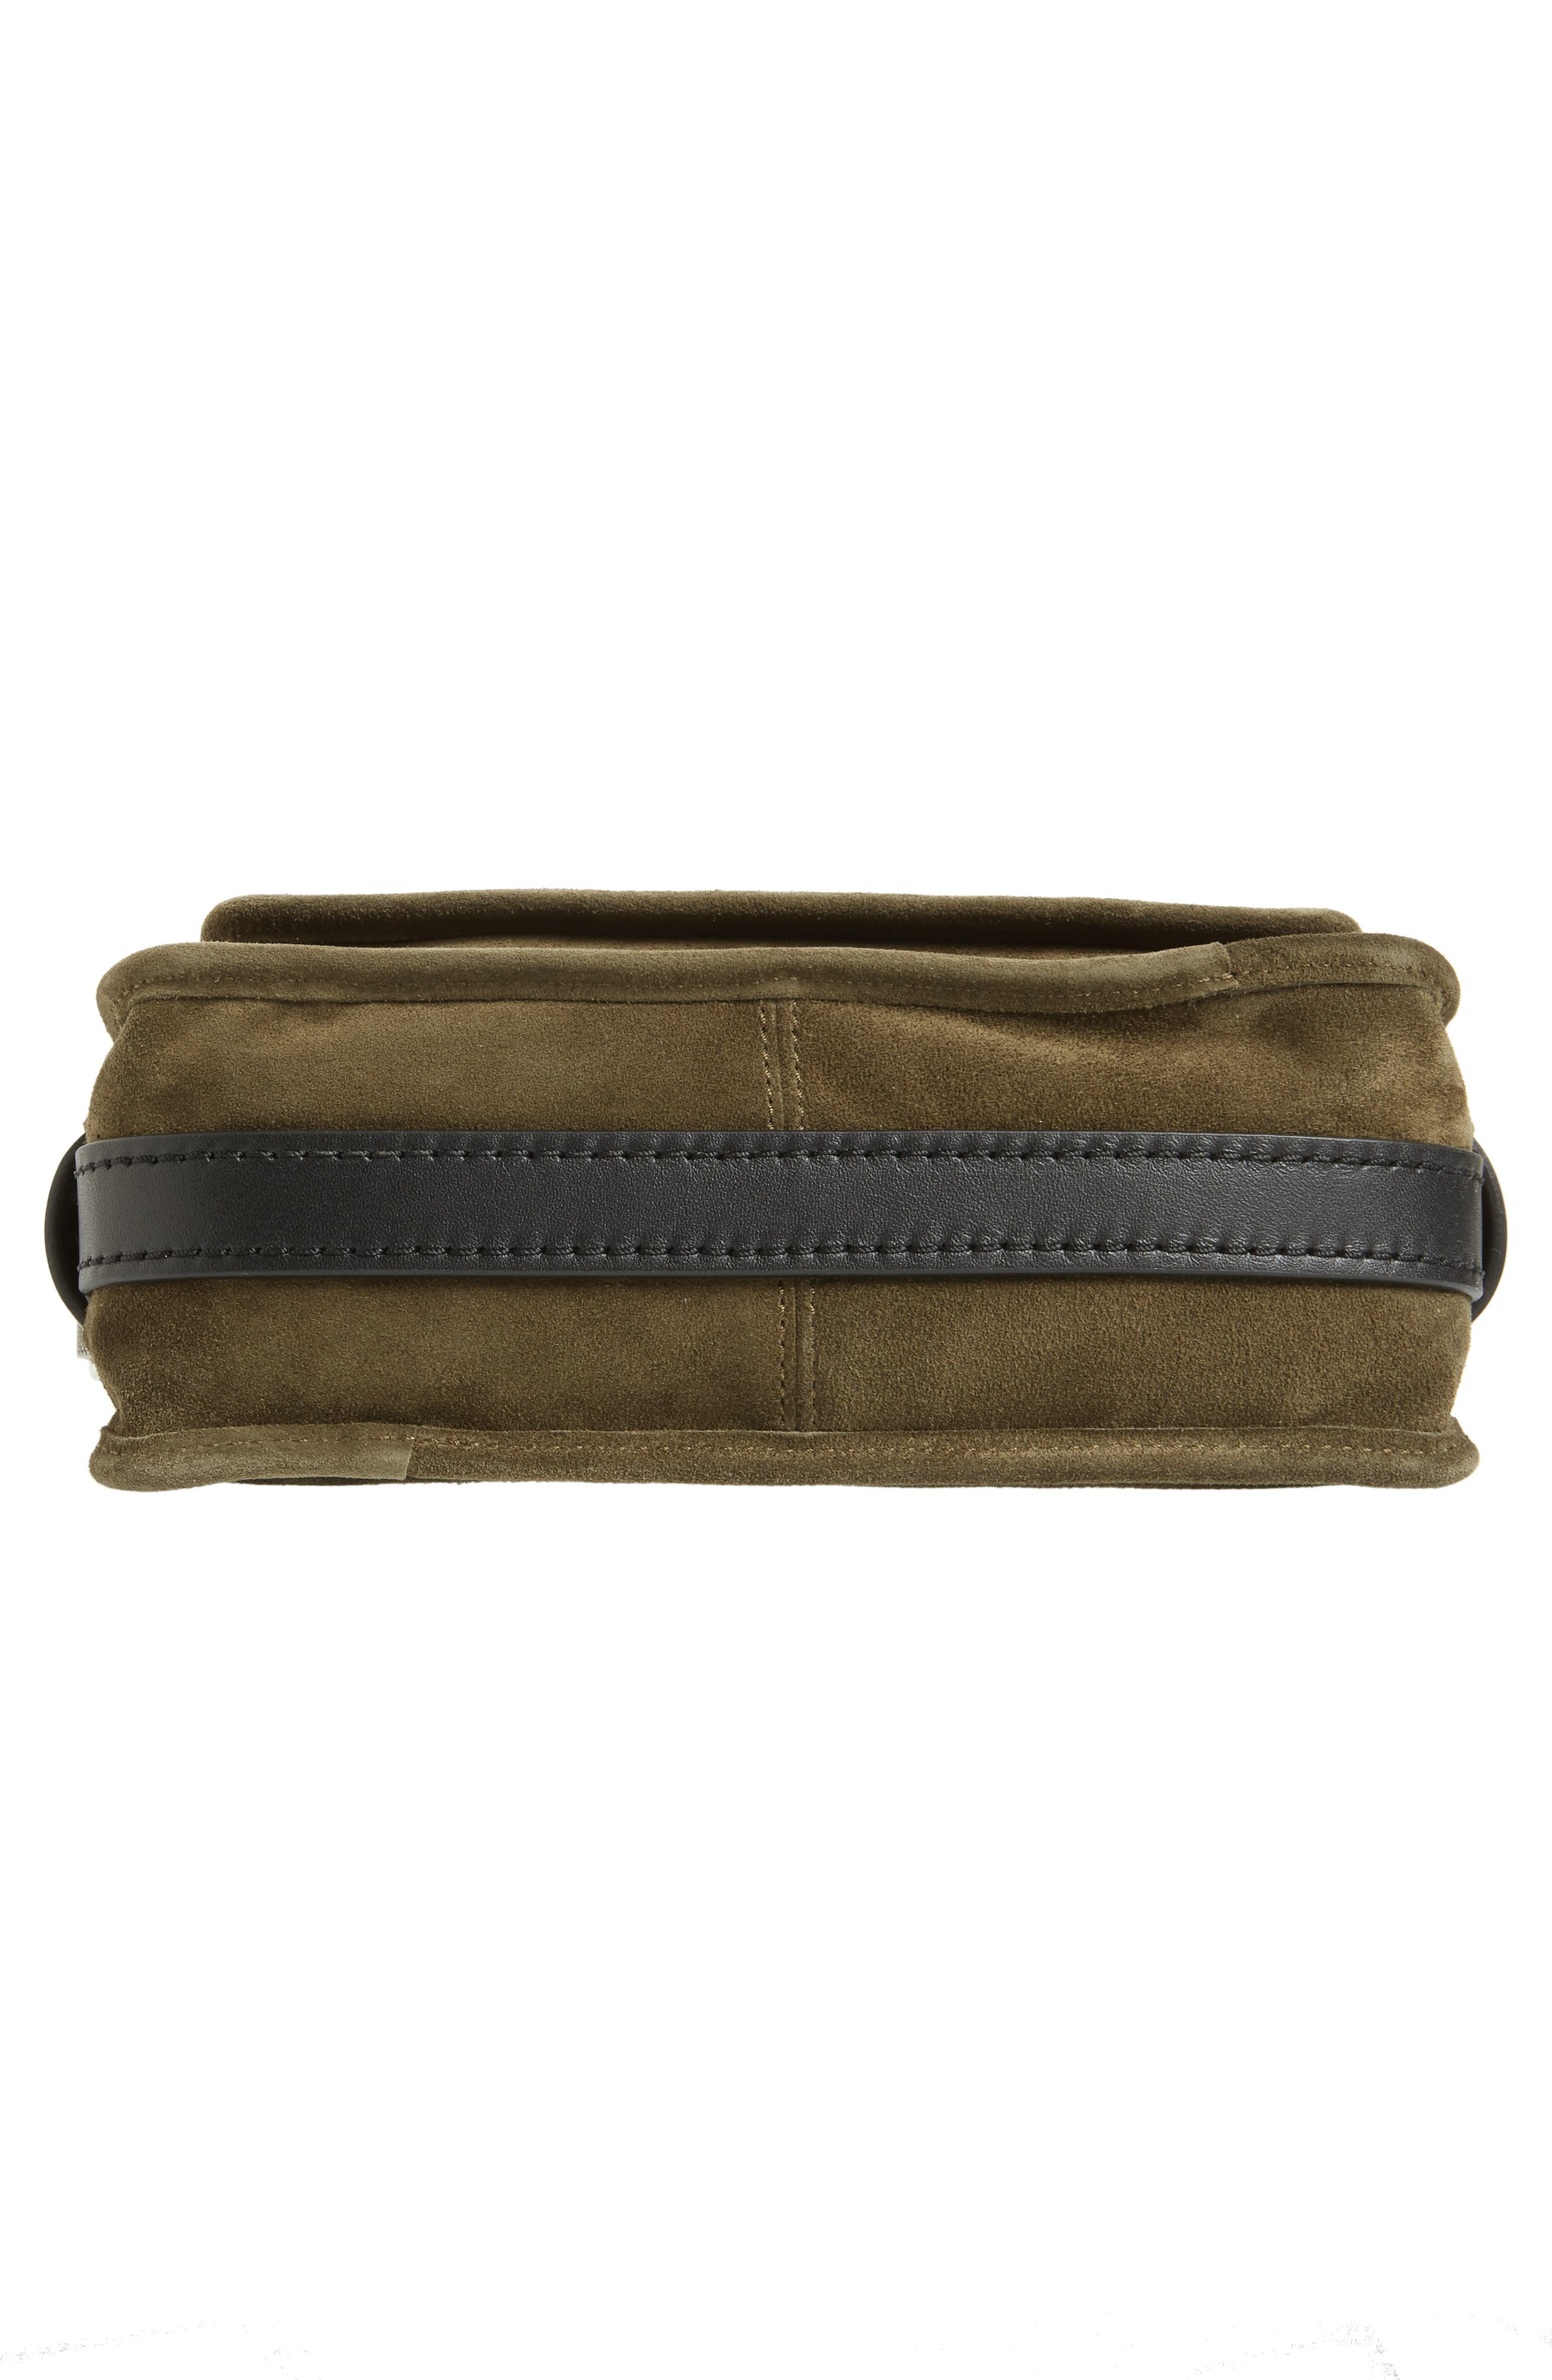 Small Leather Field Messenger Bag,                             Alternate thumbnail 6, color,                             Olive Suede